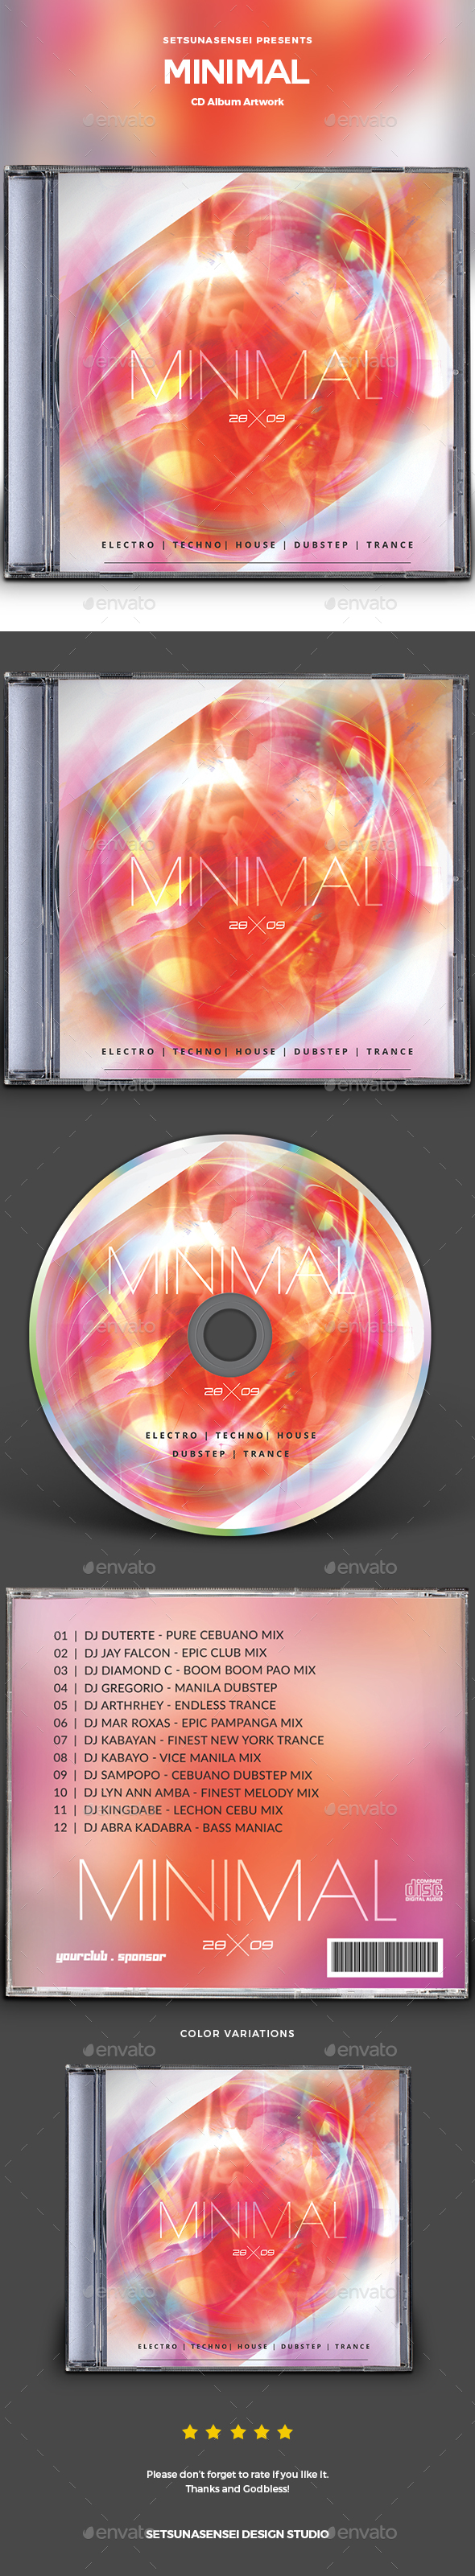 Minimal CD Album Artwork - CD & DVD Artwork Print Templates